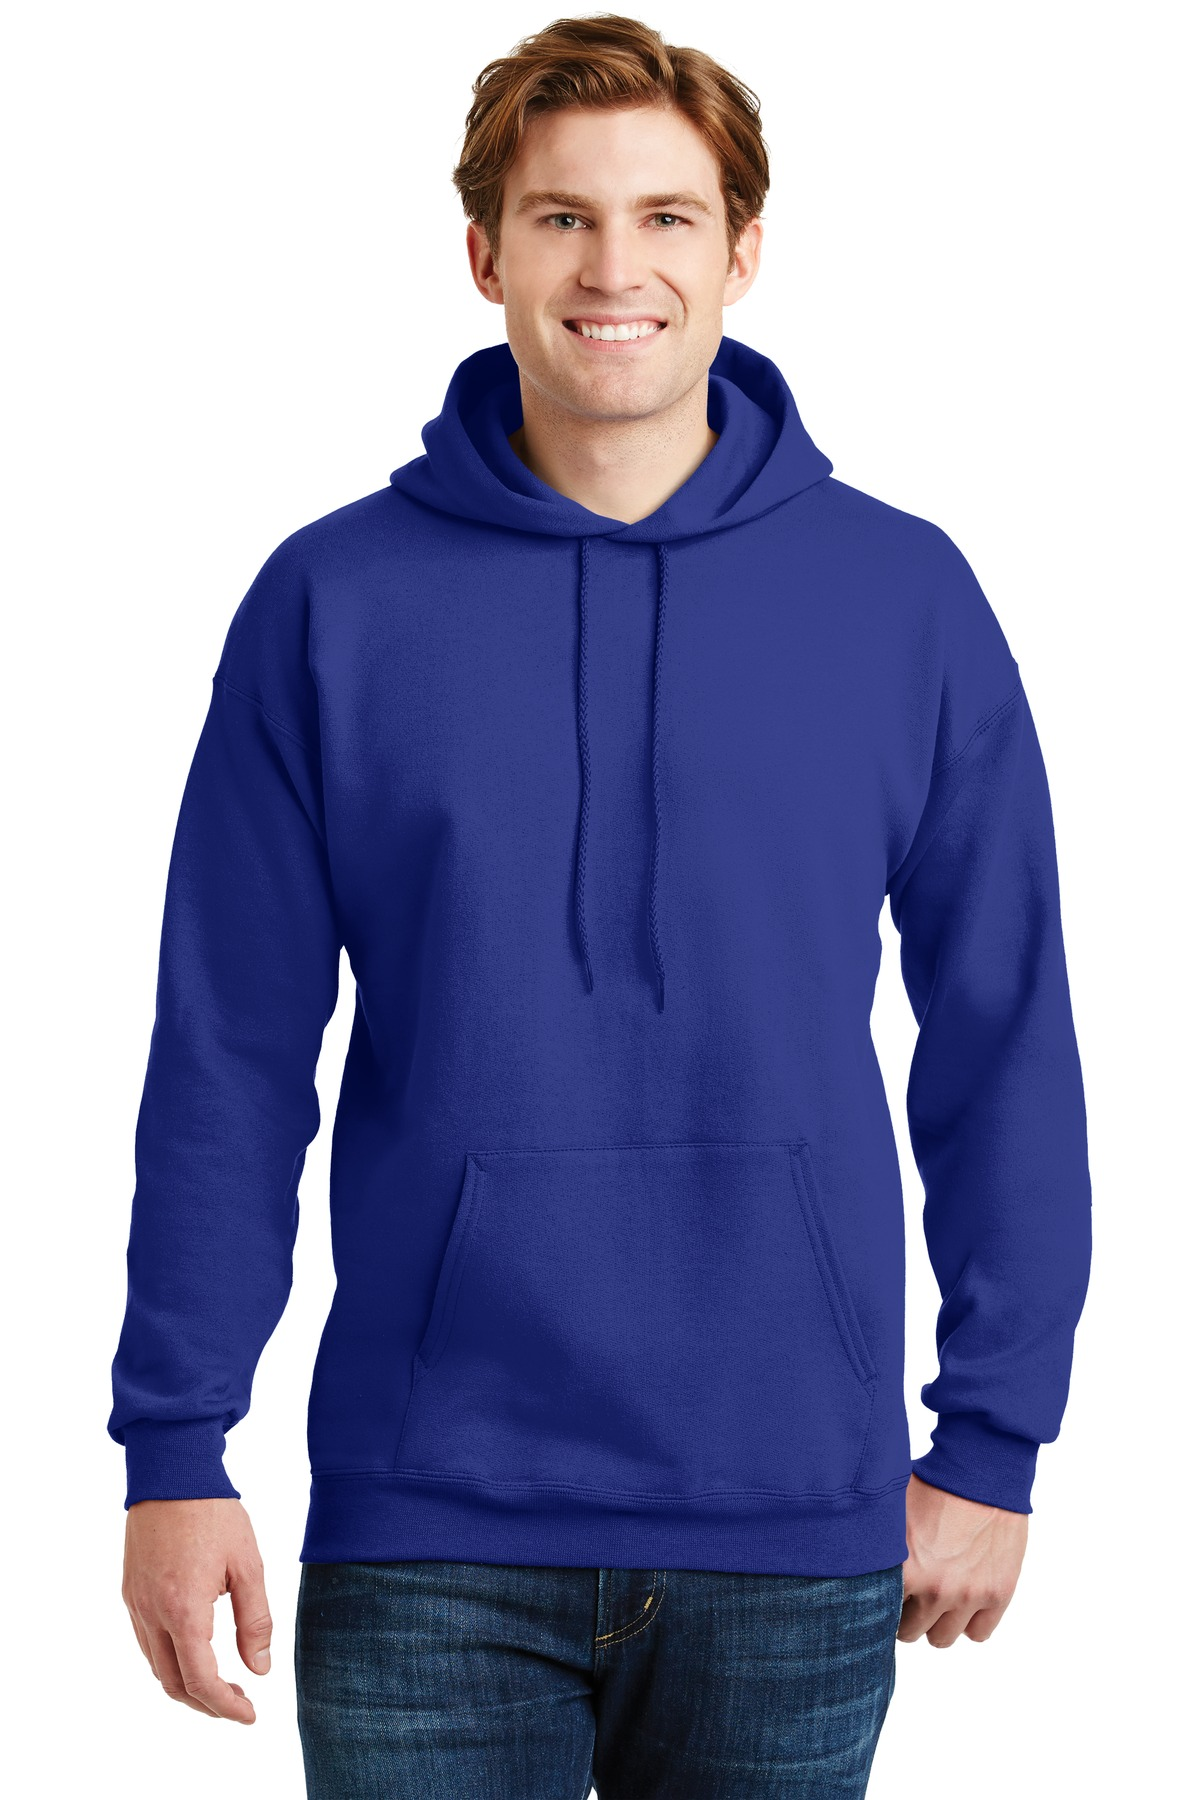 Hanes ®  Ultimate Cotton ®  - Pullover Hooded Sweatshirt.  F170 - Deep Royal